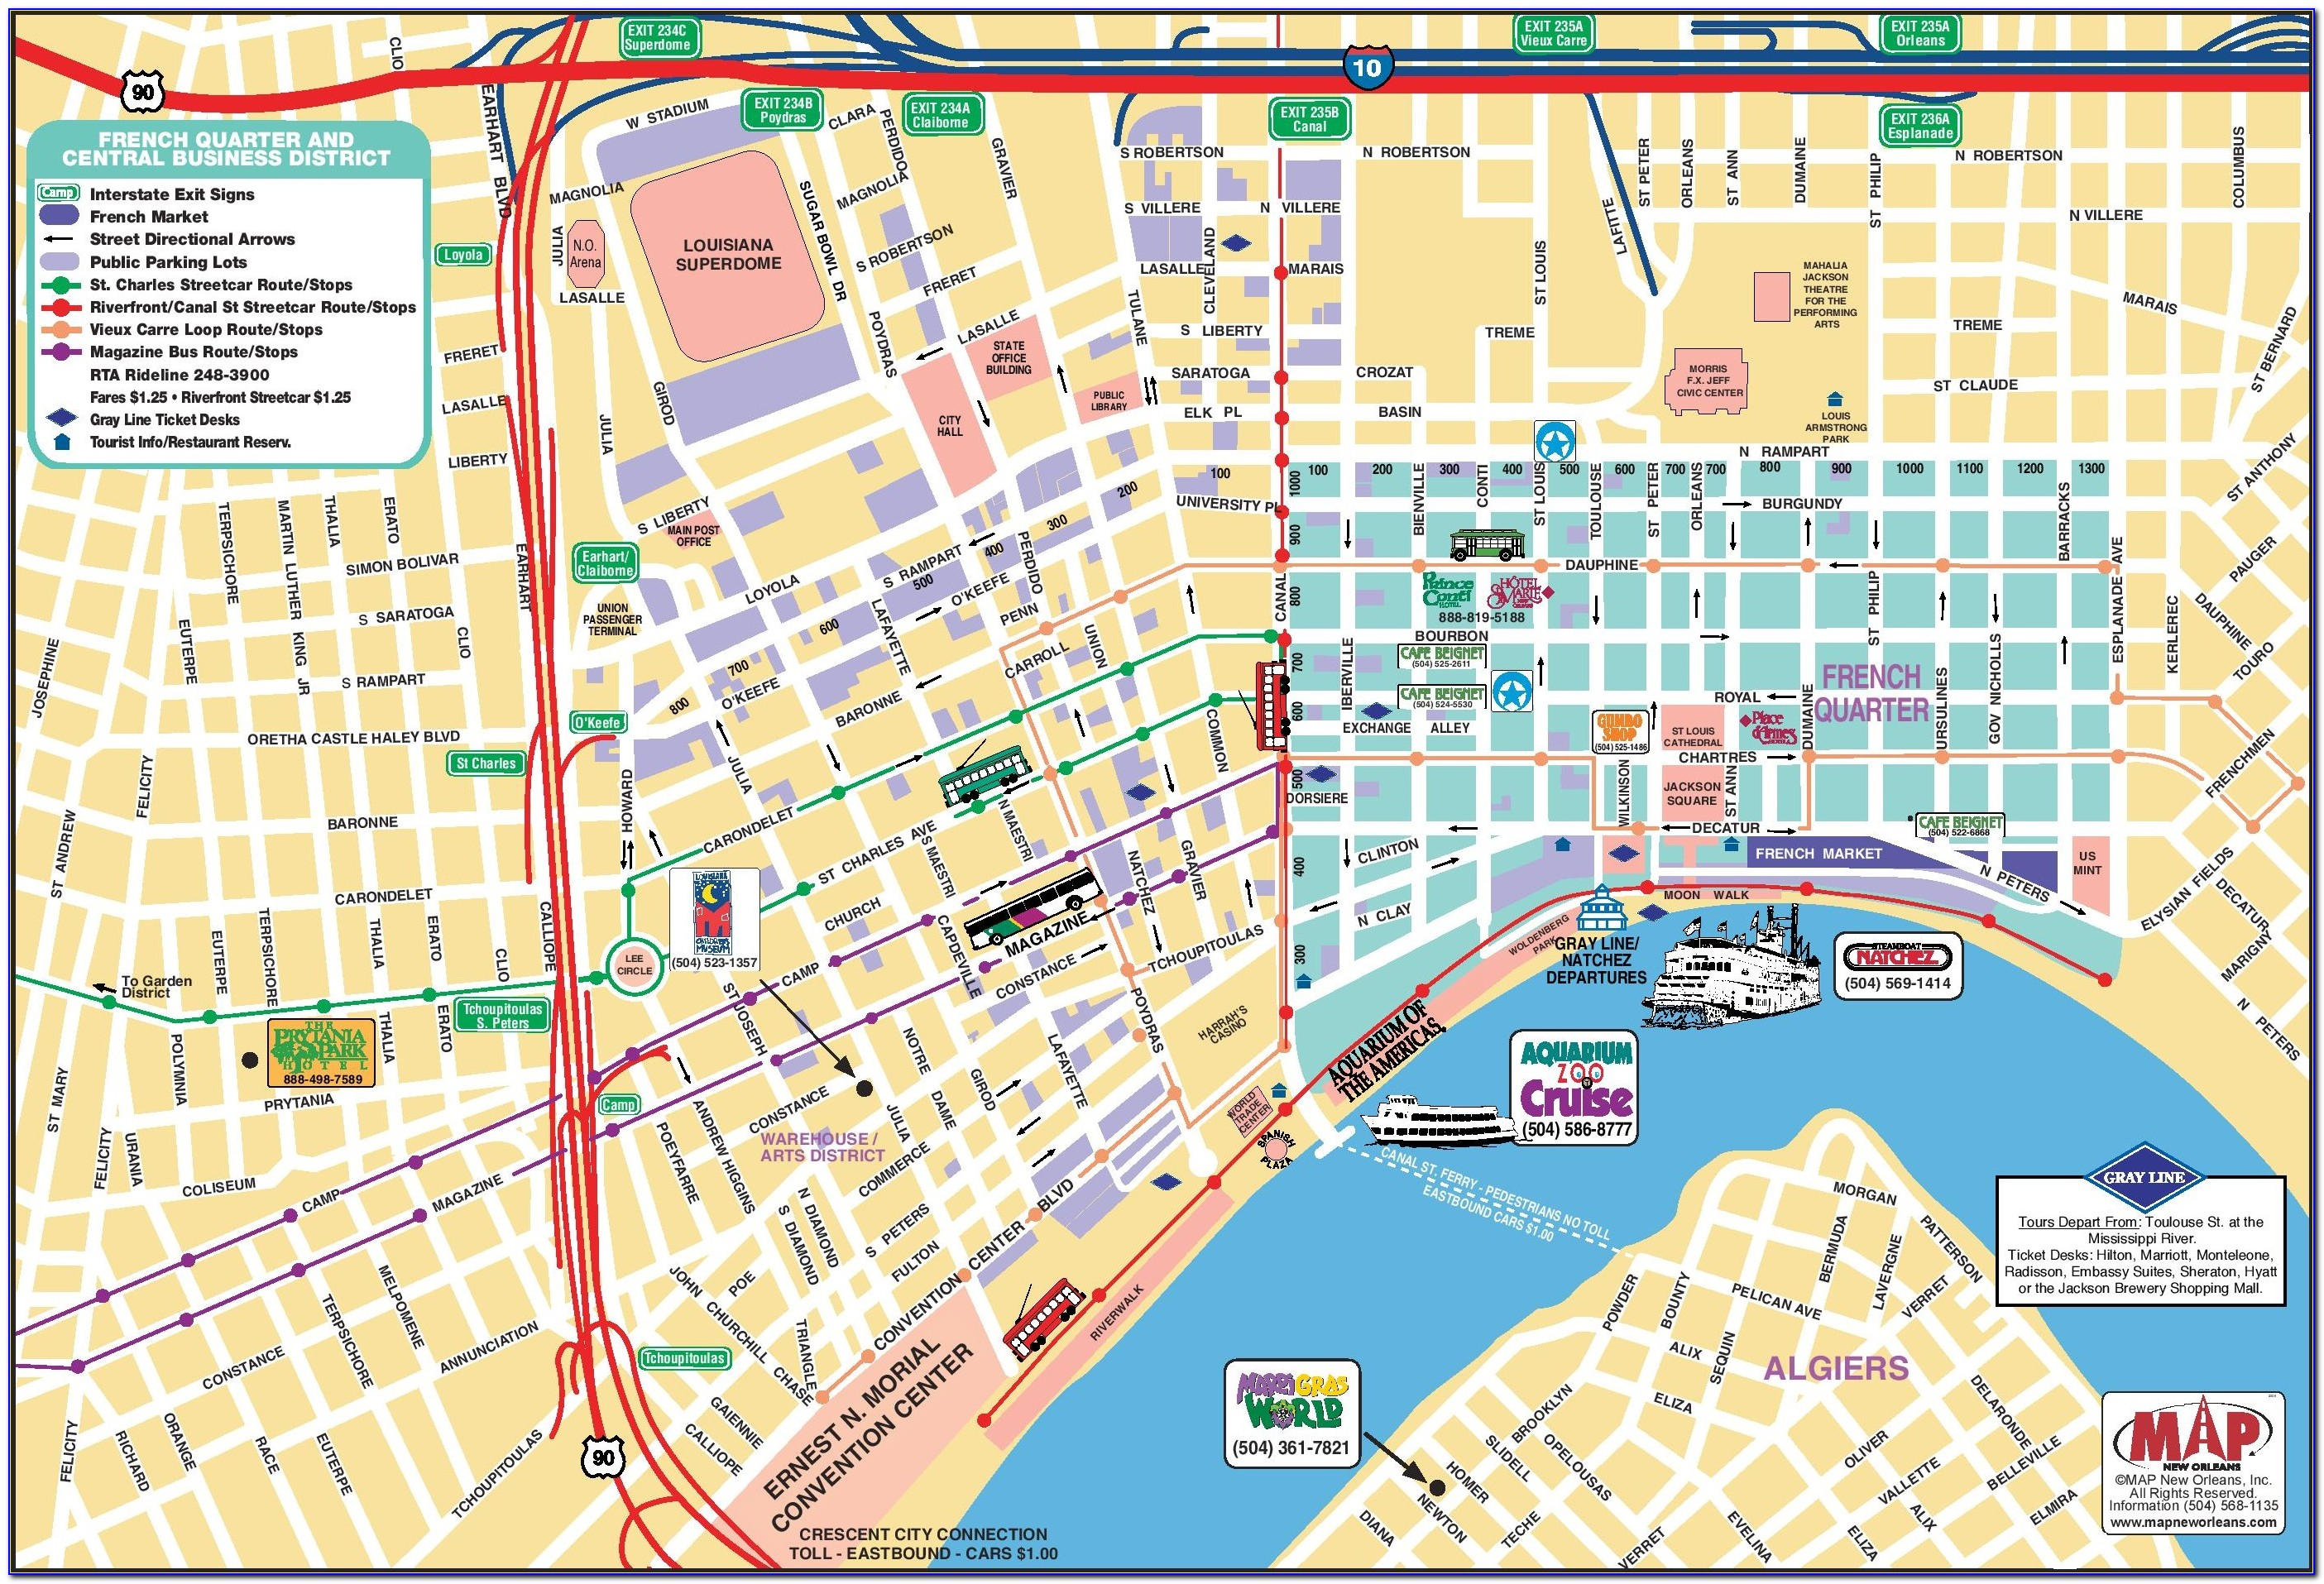 Google Maps French Quarter Hotels Maps Resume Examples Wqojx68dx4